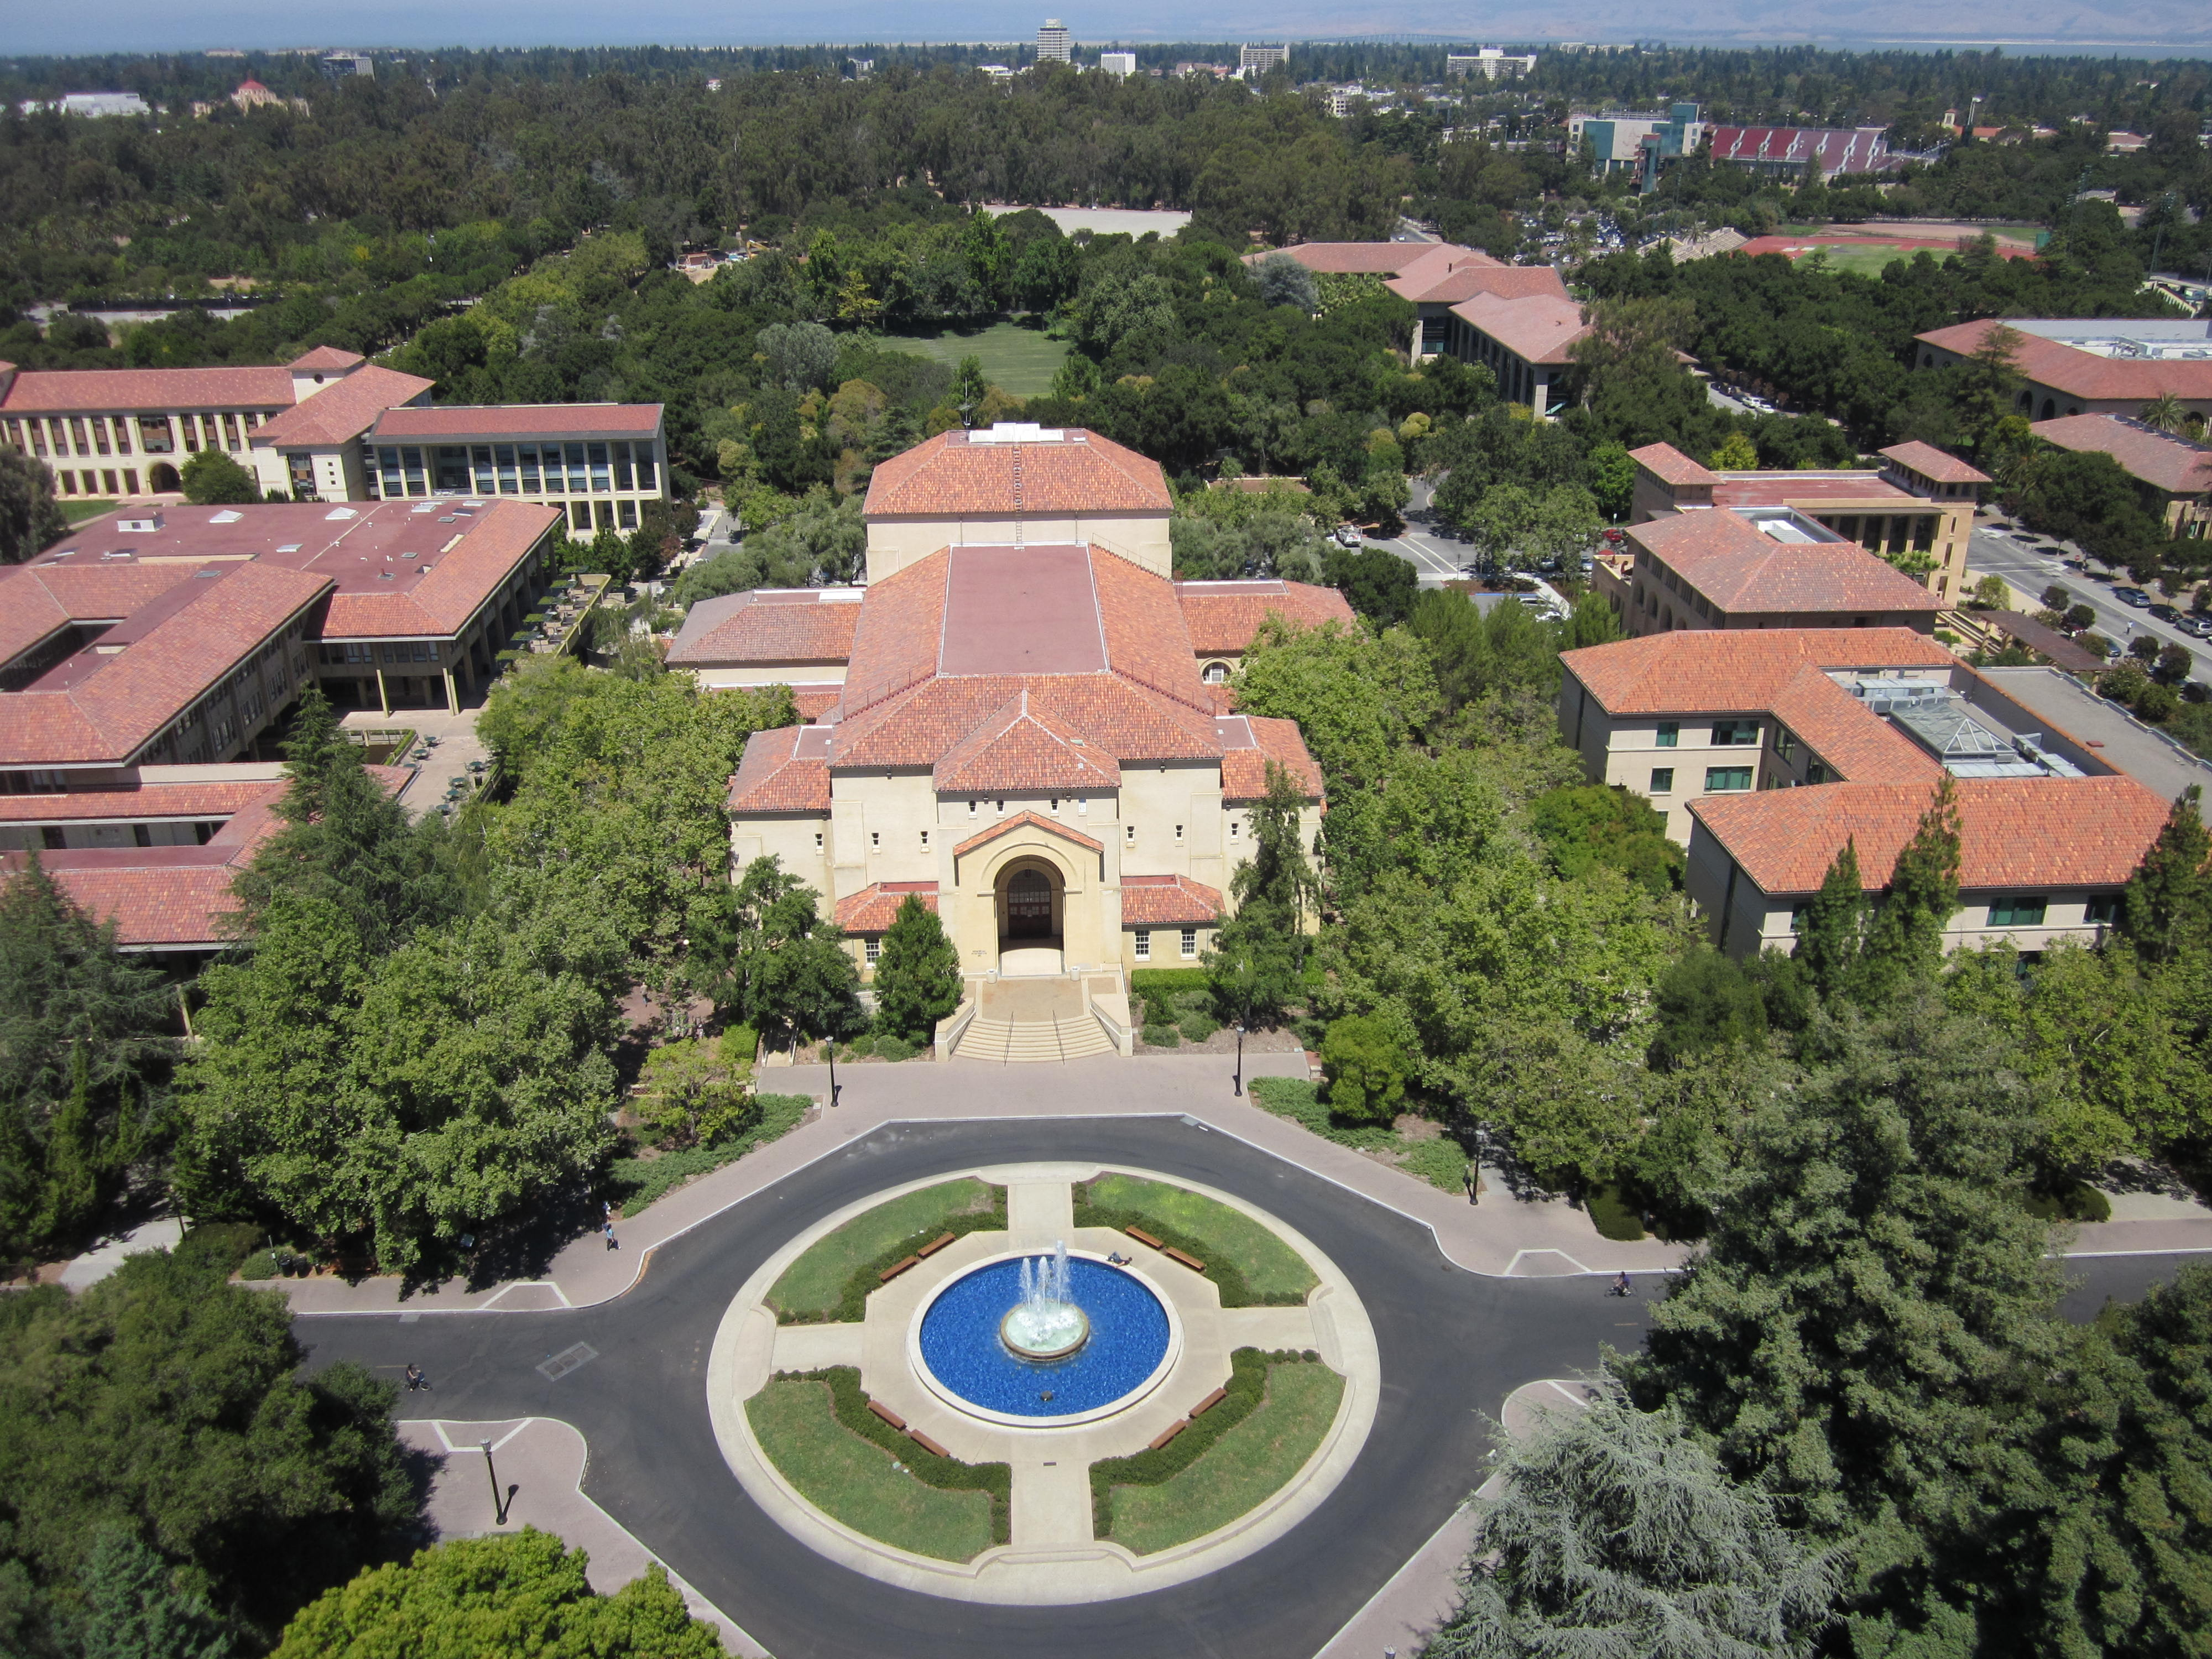 File:Stanford campus from Hoover Tower 9.JPG